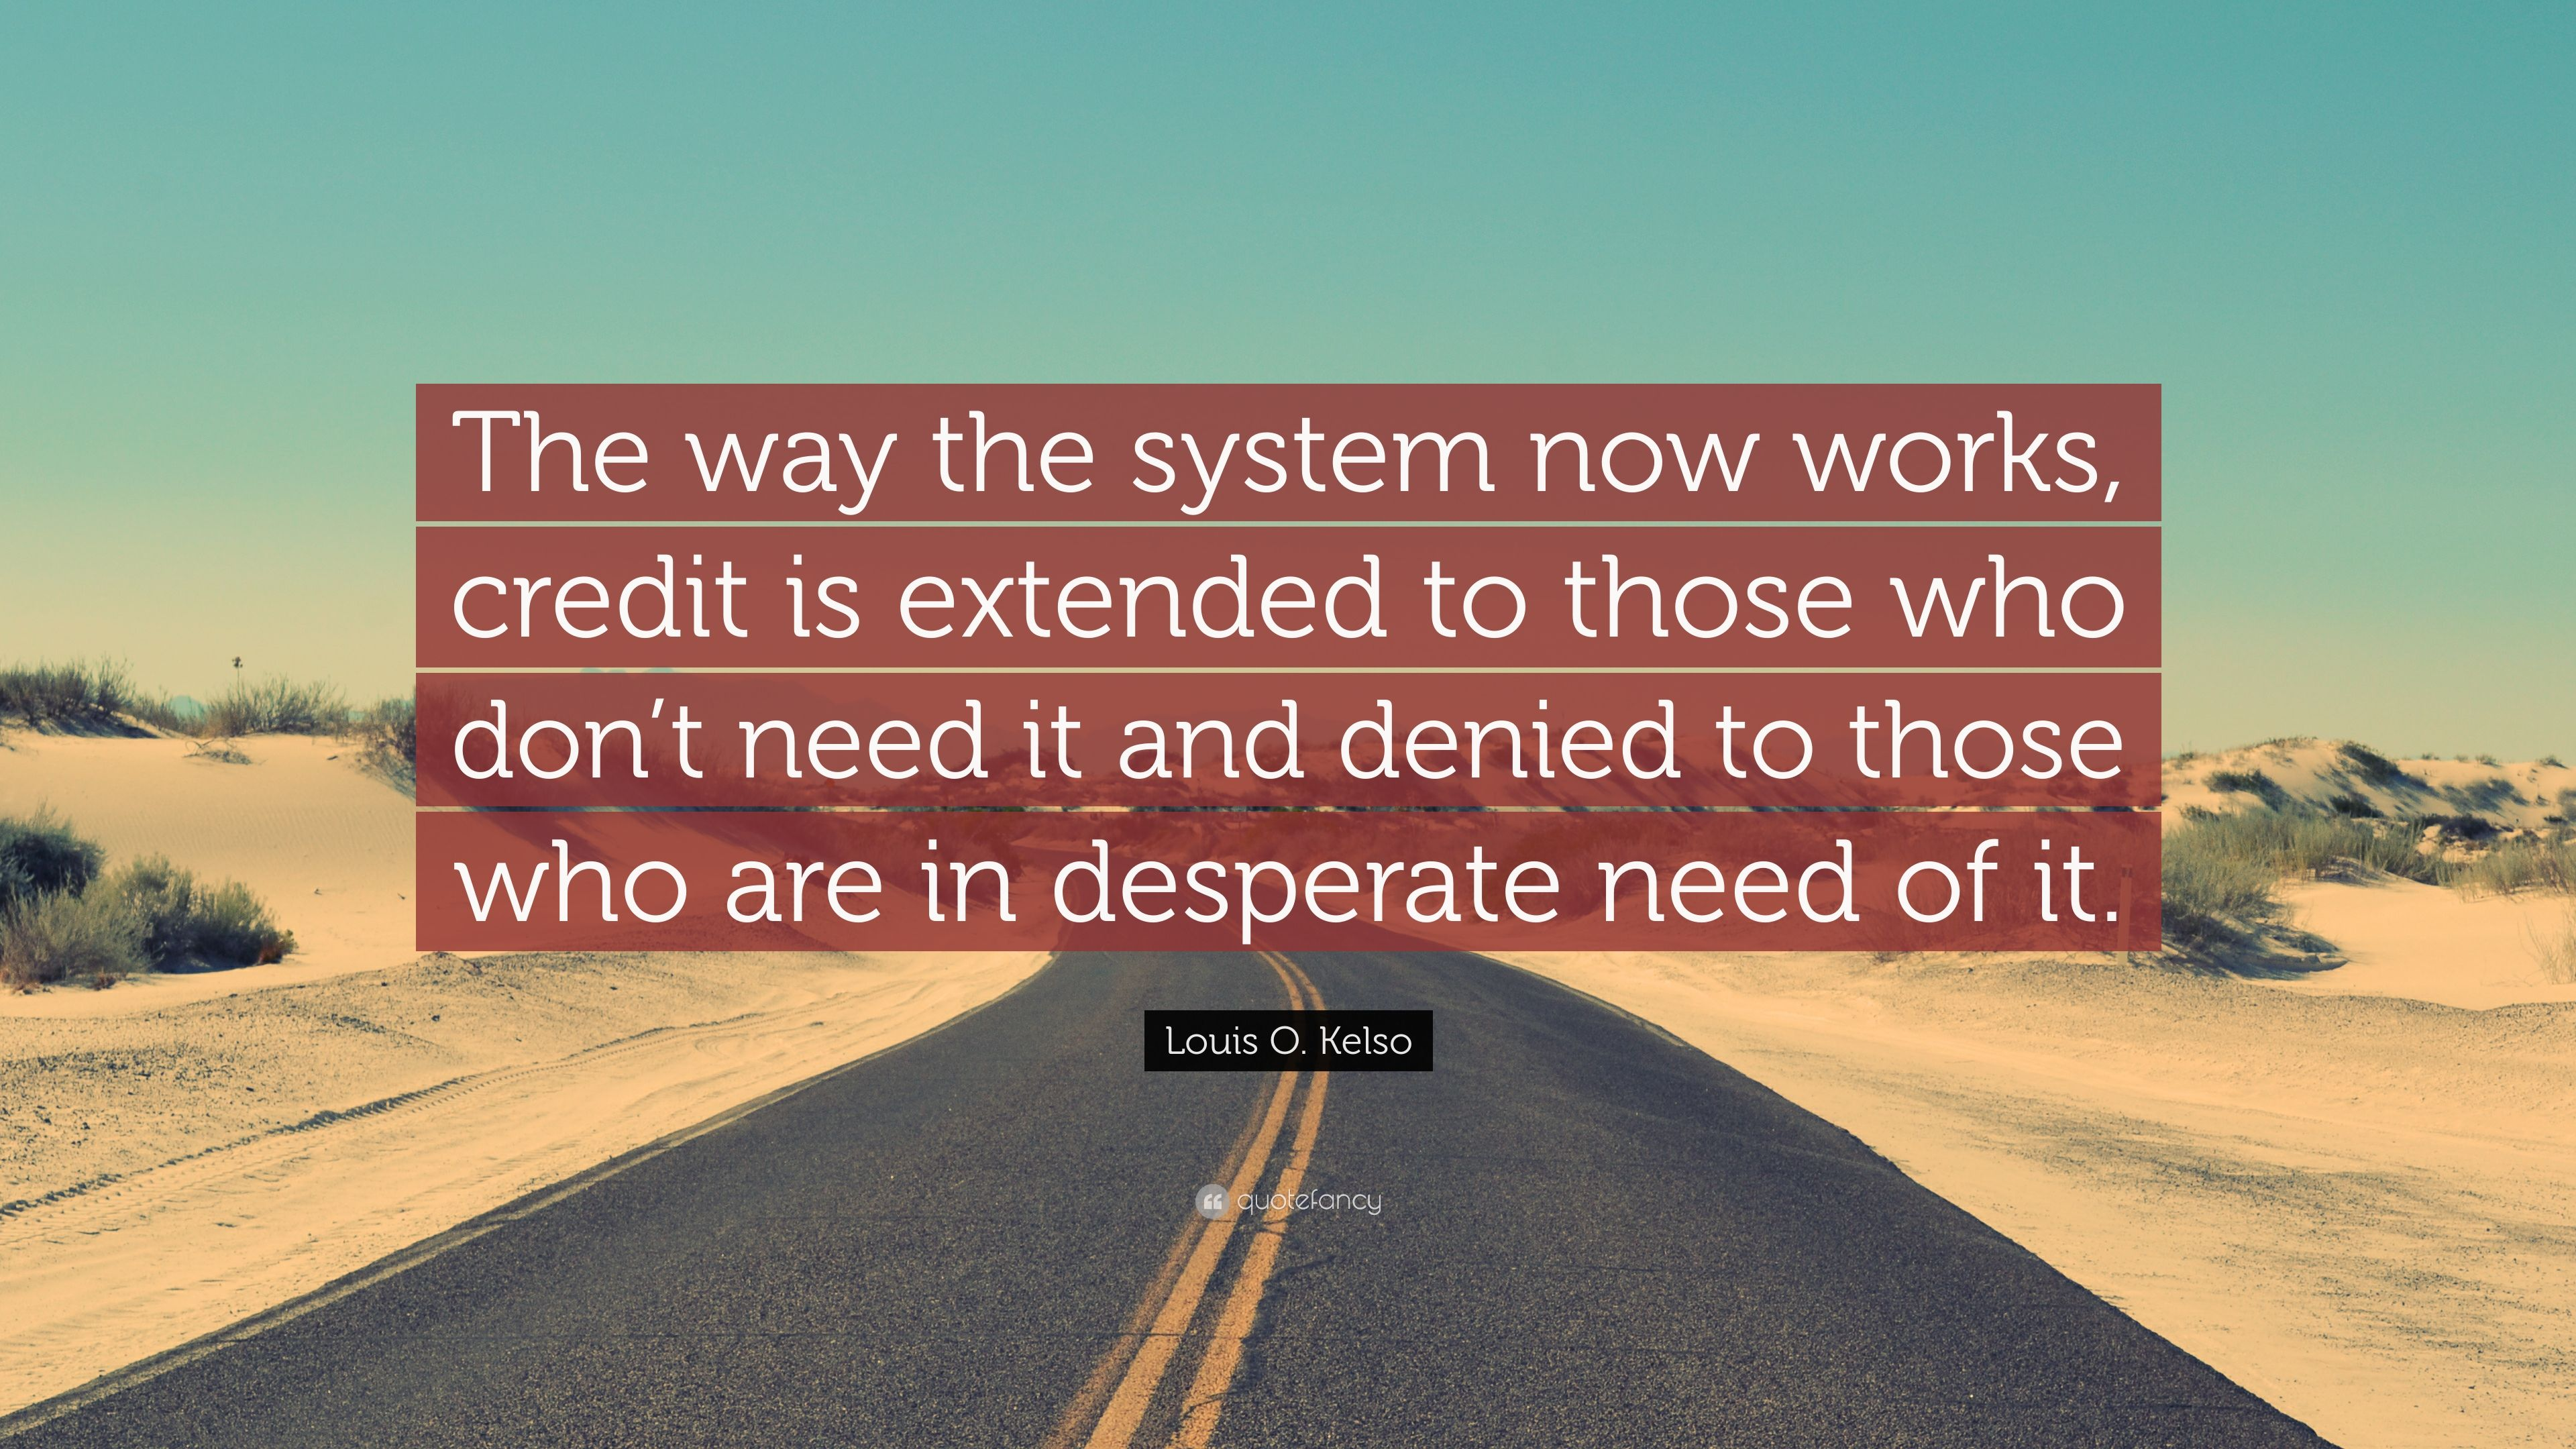 Louis O Kelso Quote The Way The System Now Works Credit Is Extended To Those Who Don T Need It And Denied To Those Who Are In Desperate Nee 7 Wallpapers Quotefancy Wadsworth, oh 44281 usa postal address: quotefancy